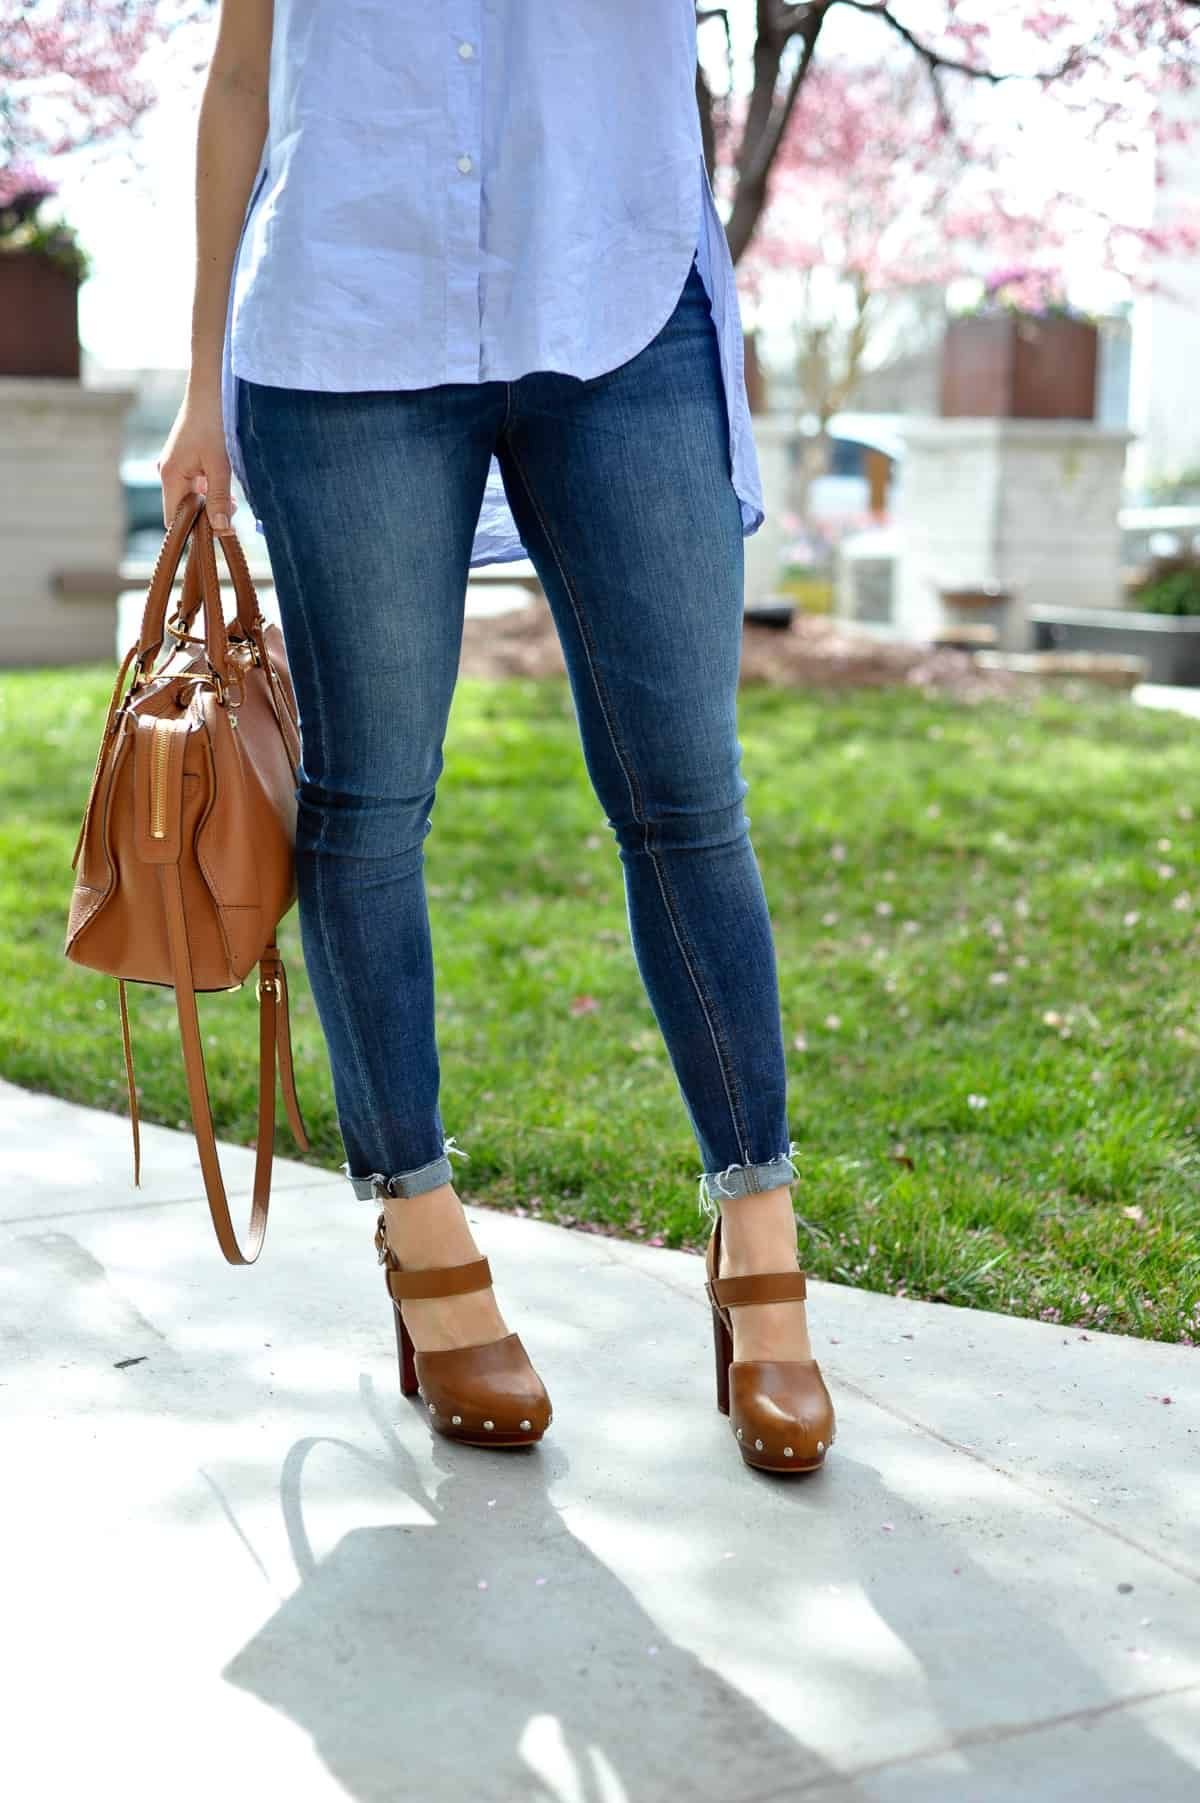 Vince Camuto Elric Shoe for spring - My Style Vita - @mystylevita - 19